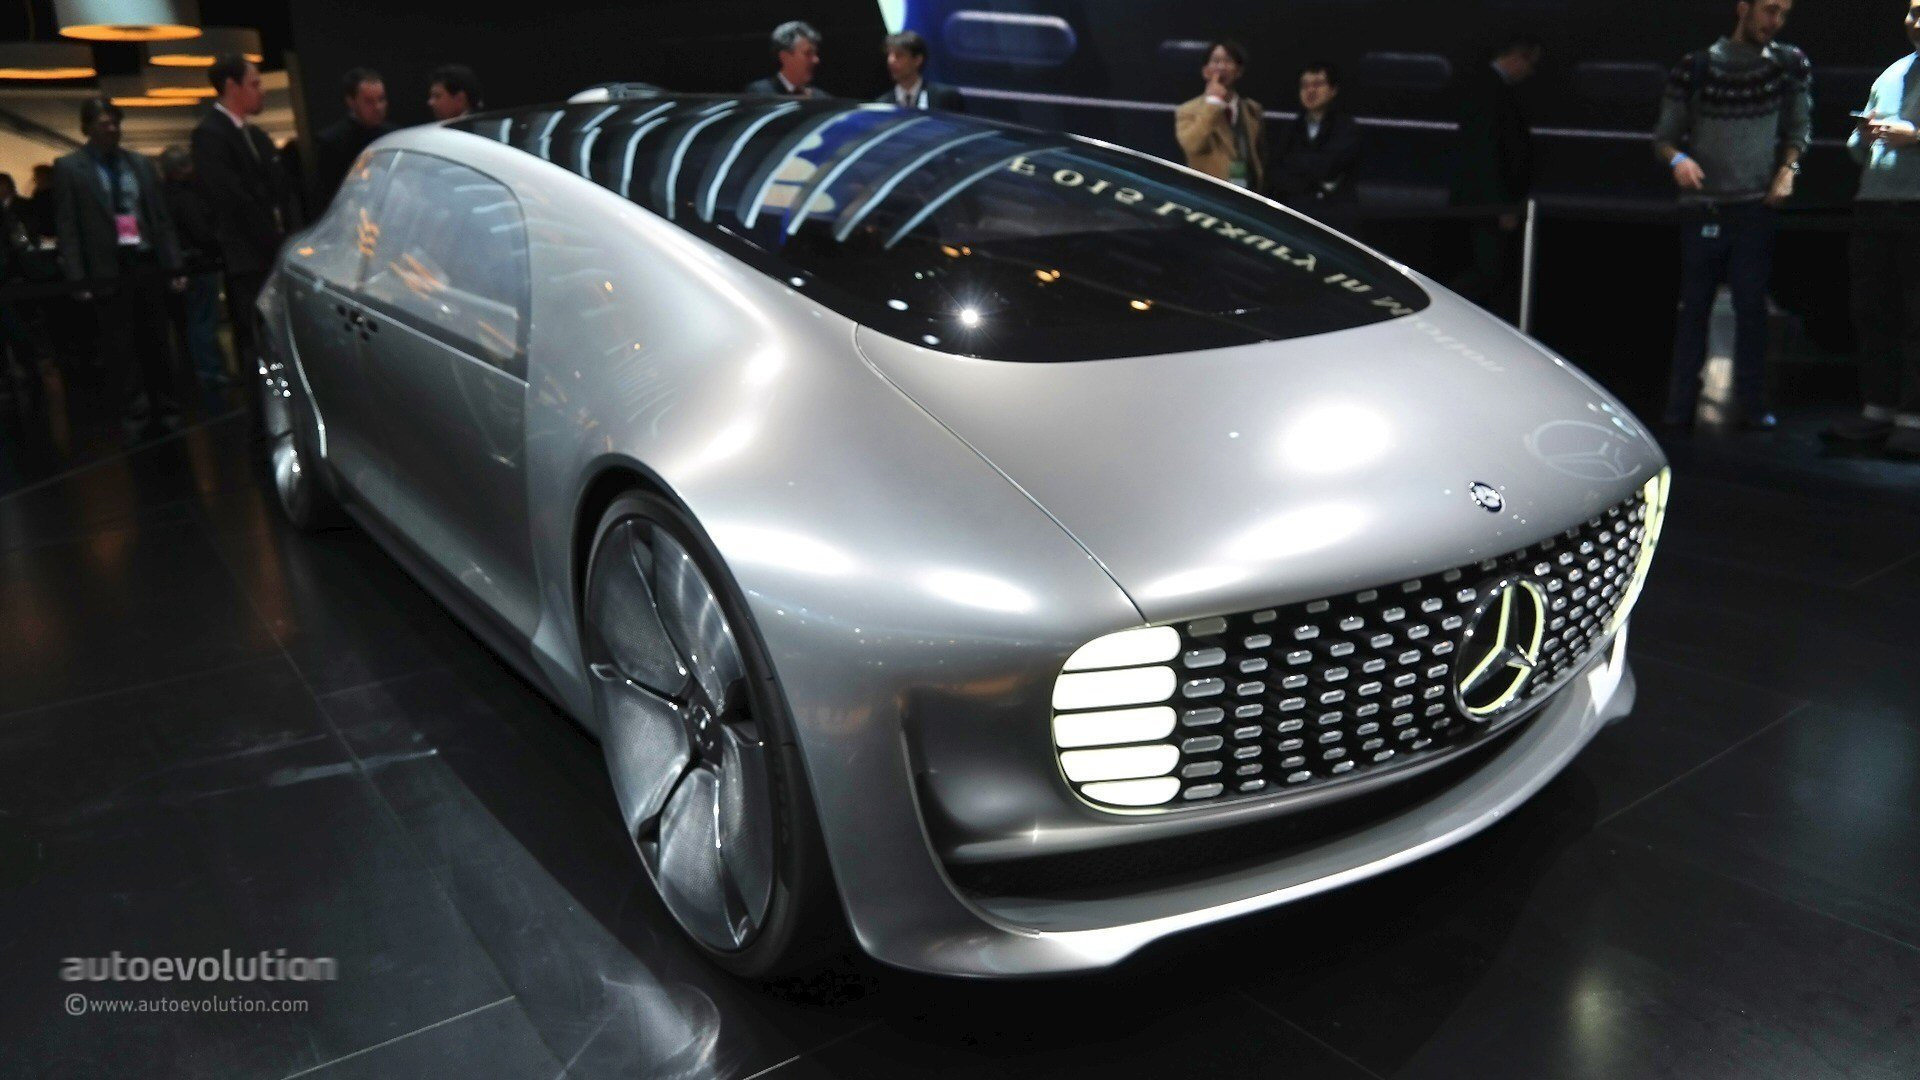 Latest Mercedes Claims Cars Won't Change Drastically In Design Free Download